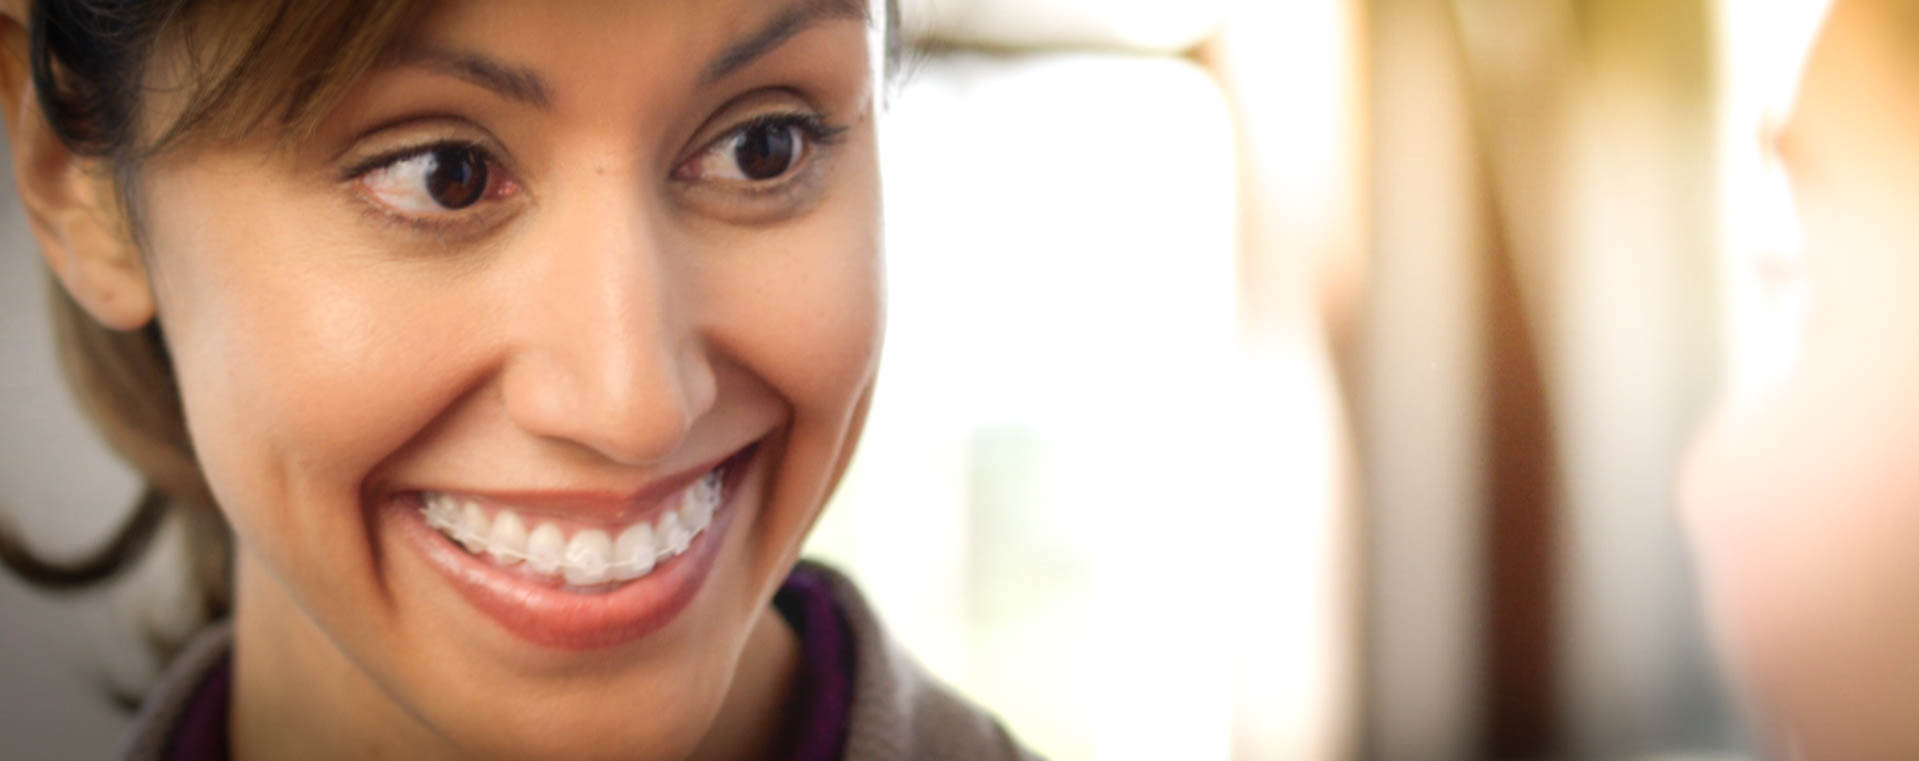 Clear Braces - Minimally Invasive Dentistry